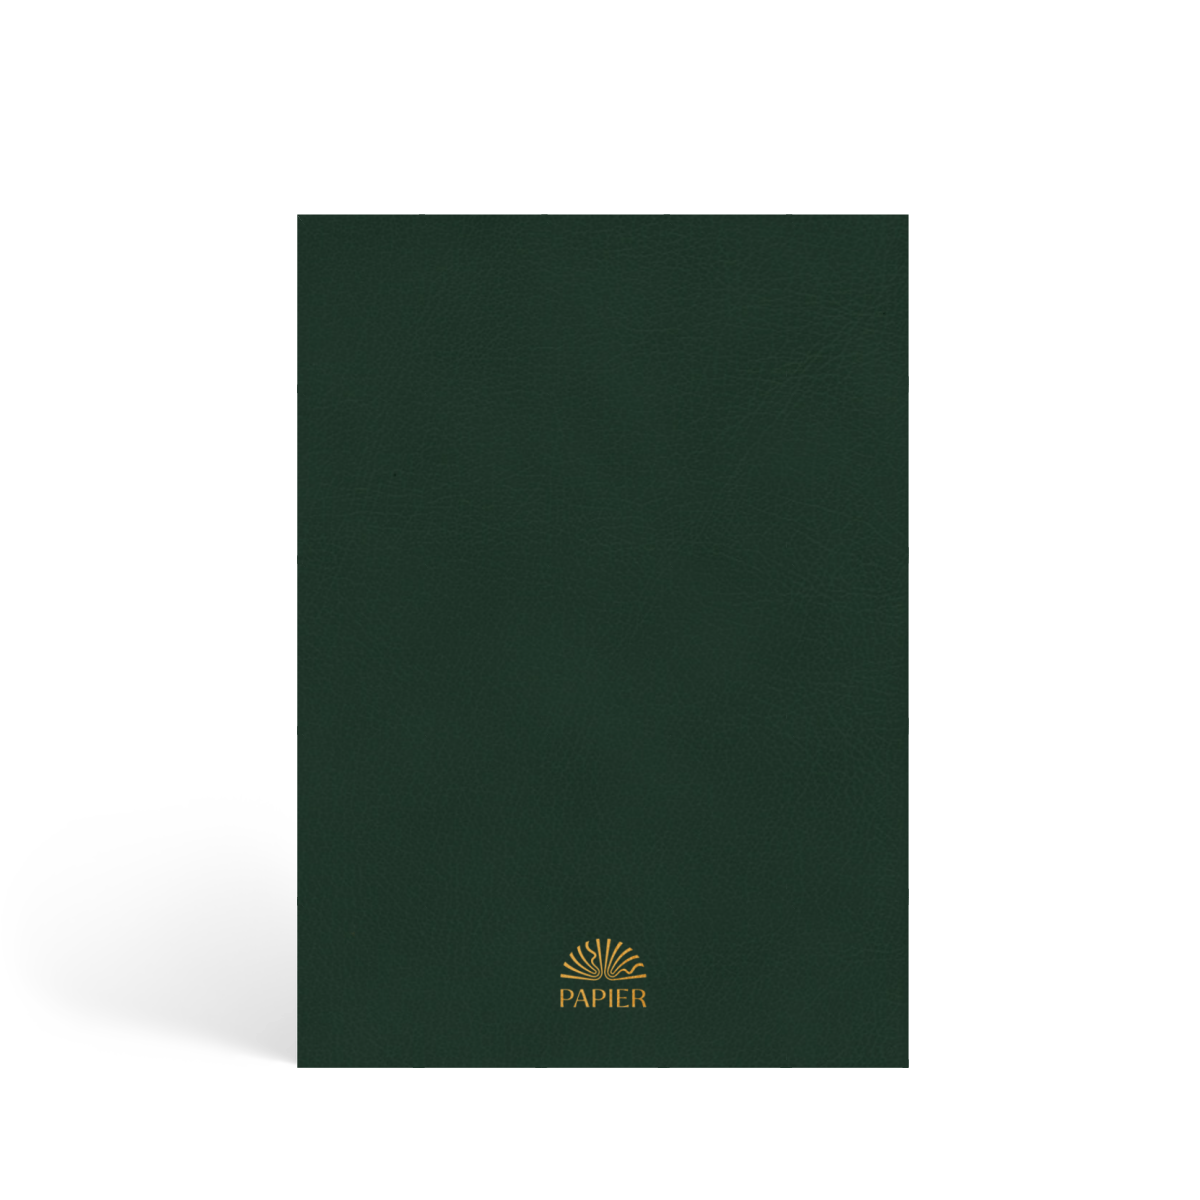 Https%3a%2f%2fwww.papier.com%2fproduct image%2f99121%2f5%2fpine green bee 25245 back 1576668949.png?ixlib=rb 1.1